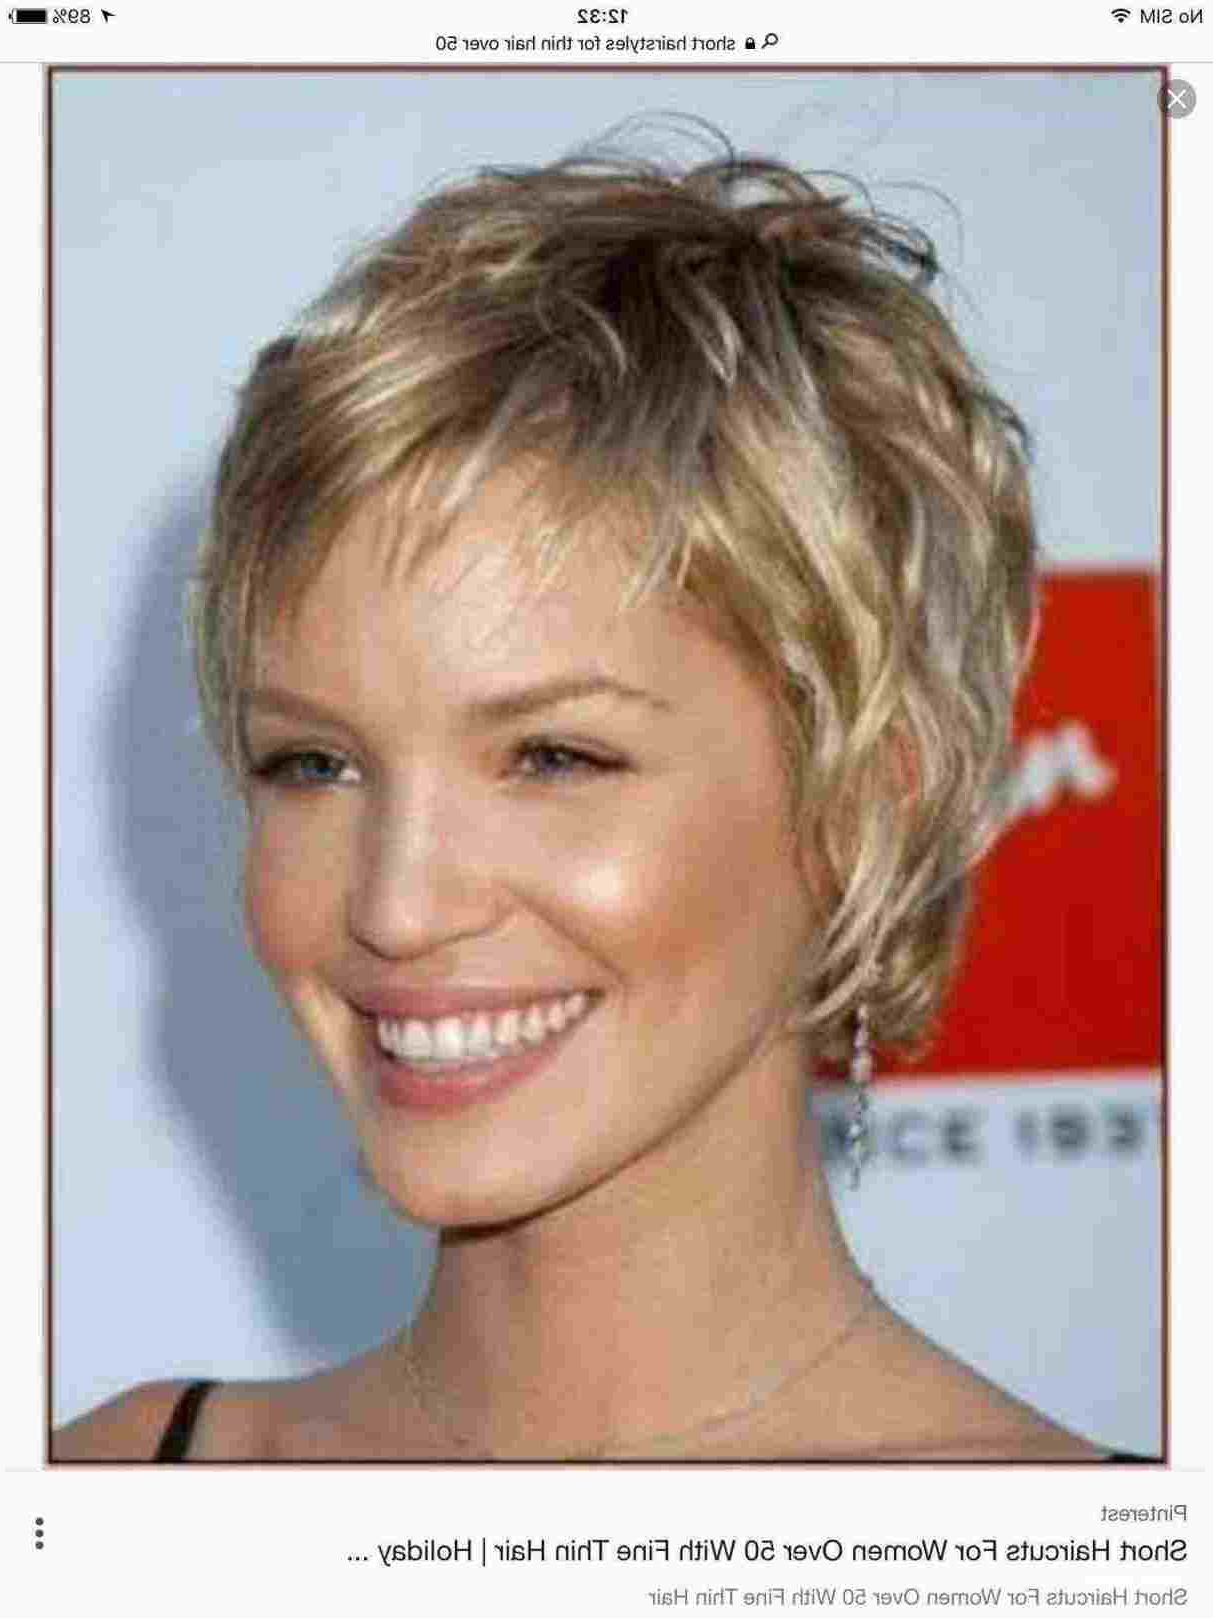 U Manrhatilambalajcom Cute Bob And Inspired By Celebrities Within Cute Short Haircuts For Thin Hair (View 15 of 25)